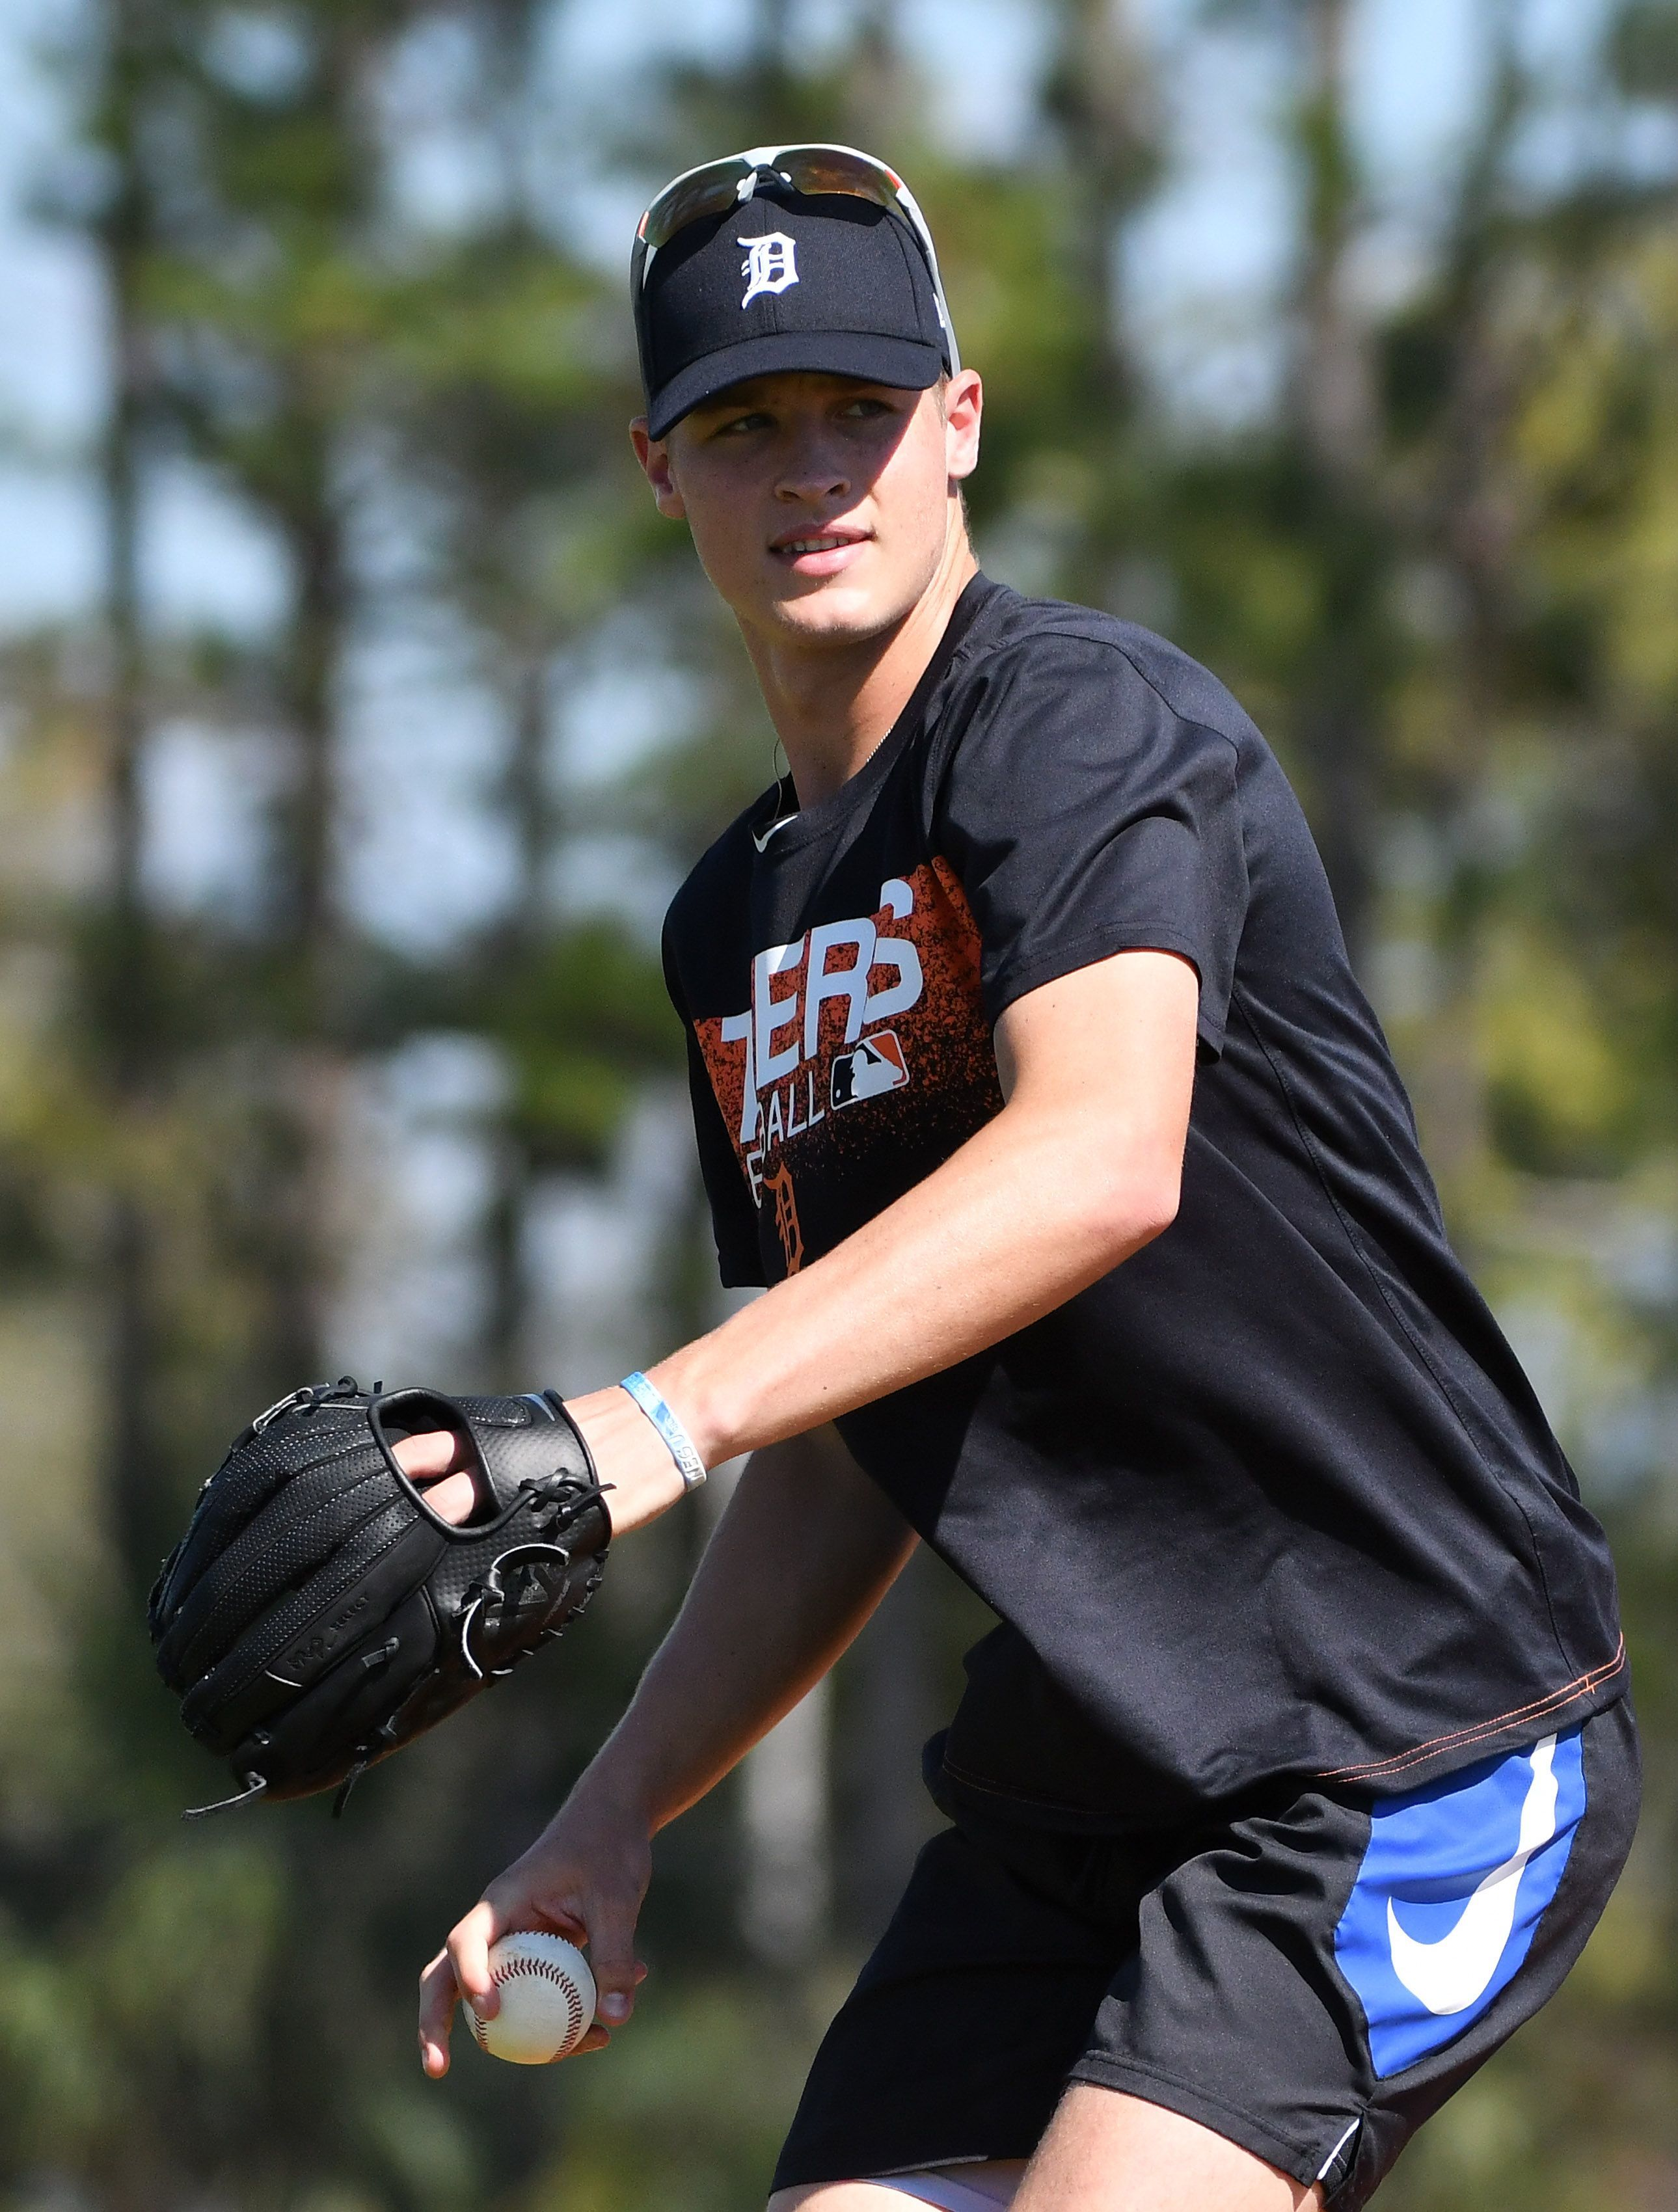 Tigers right-handed pitching prospect Matt Manning is ranked No. 50 in Baseball America's top 100 for 2019.